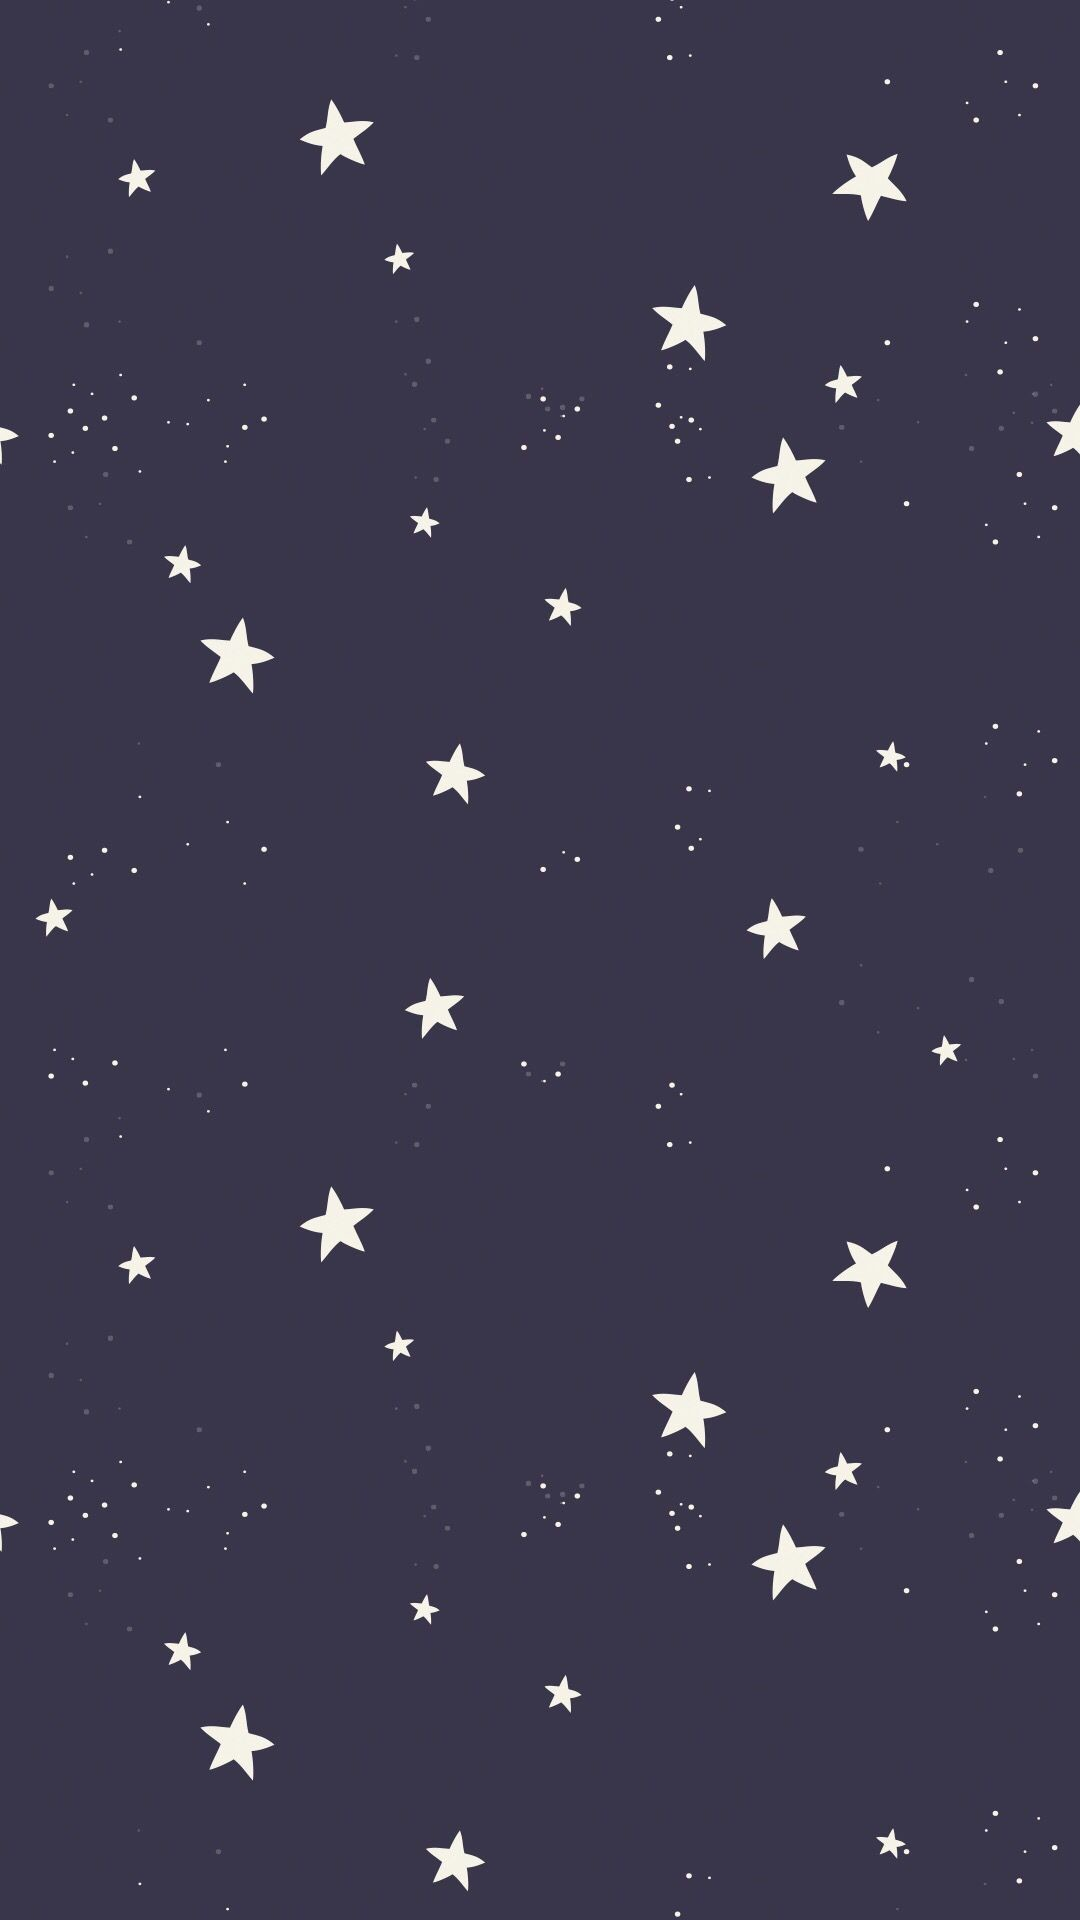 82 Stars Iphone Wallpapers on WallpaperPlay 1080x1920